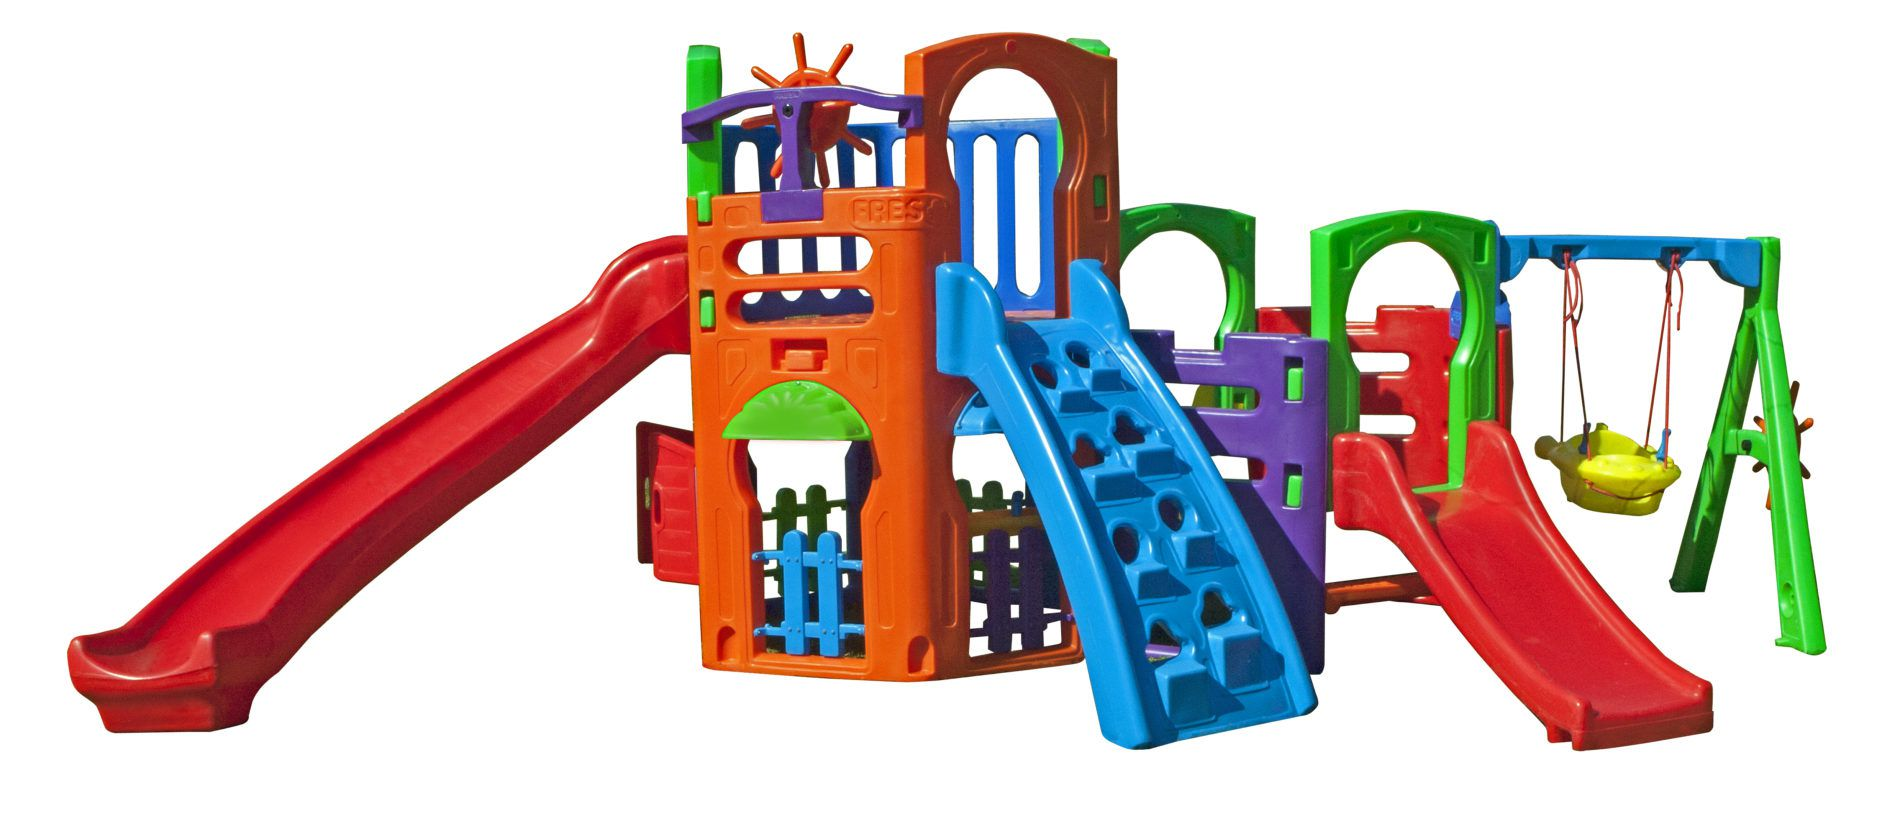 Playground Multiplay House + Kit Fly | 5m x 2m50 x 1m85 | 1 a 12 anos